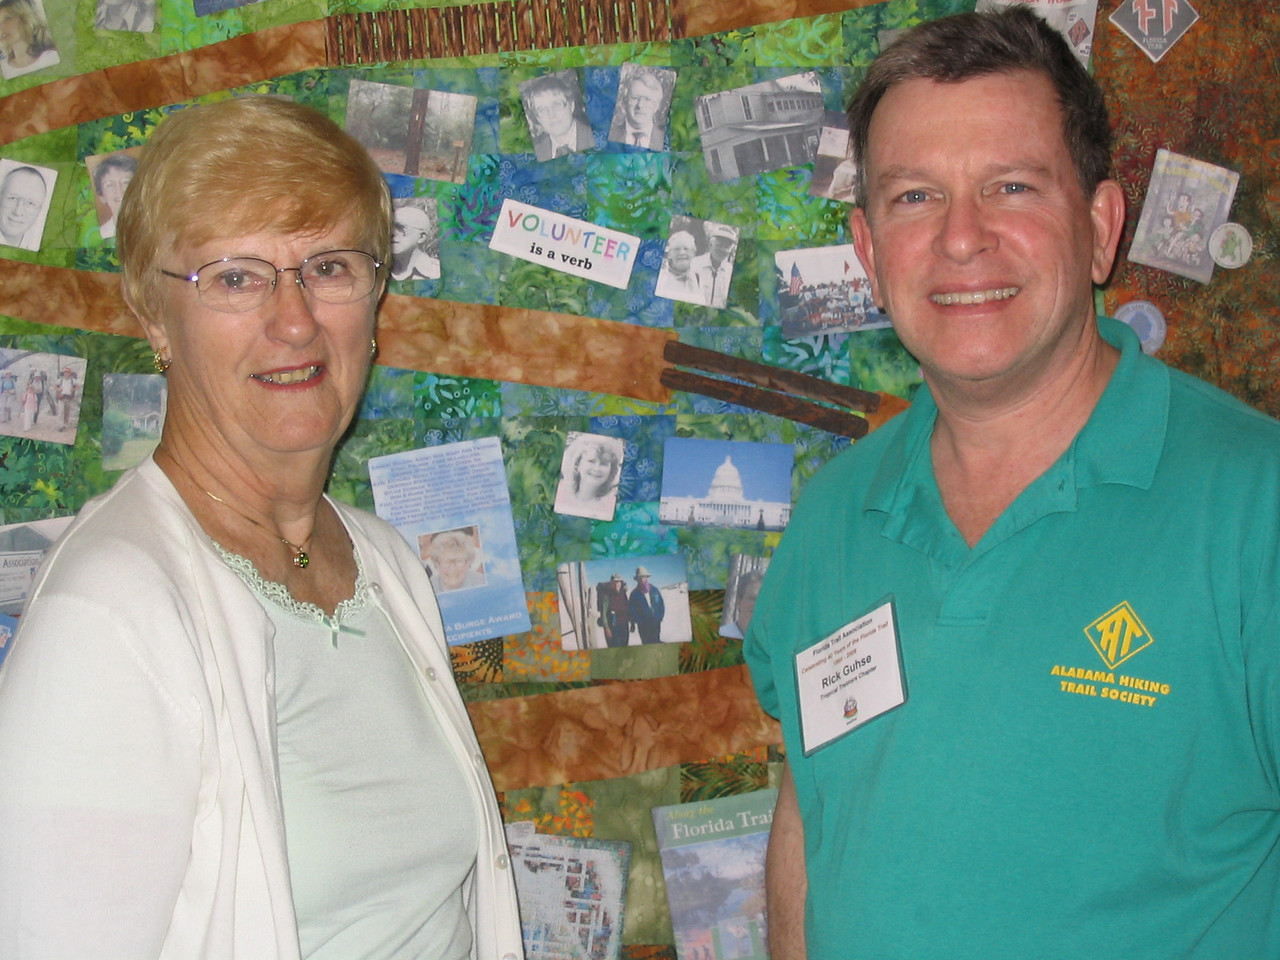 Joan Hobson and Rick Gushe flank their thru-hike photo on the 40th Anniversary quilt<br /> PHOTO CREDIT: Diane Wilkins / Florida Trail Association